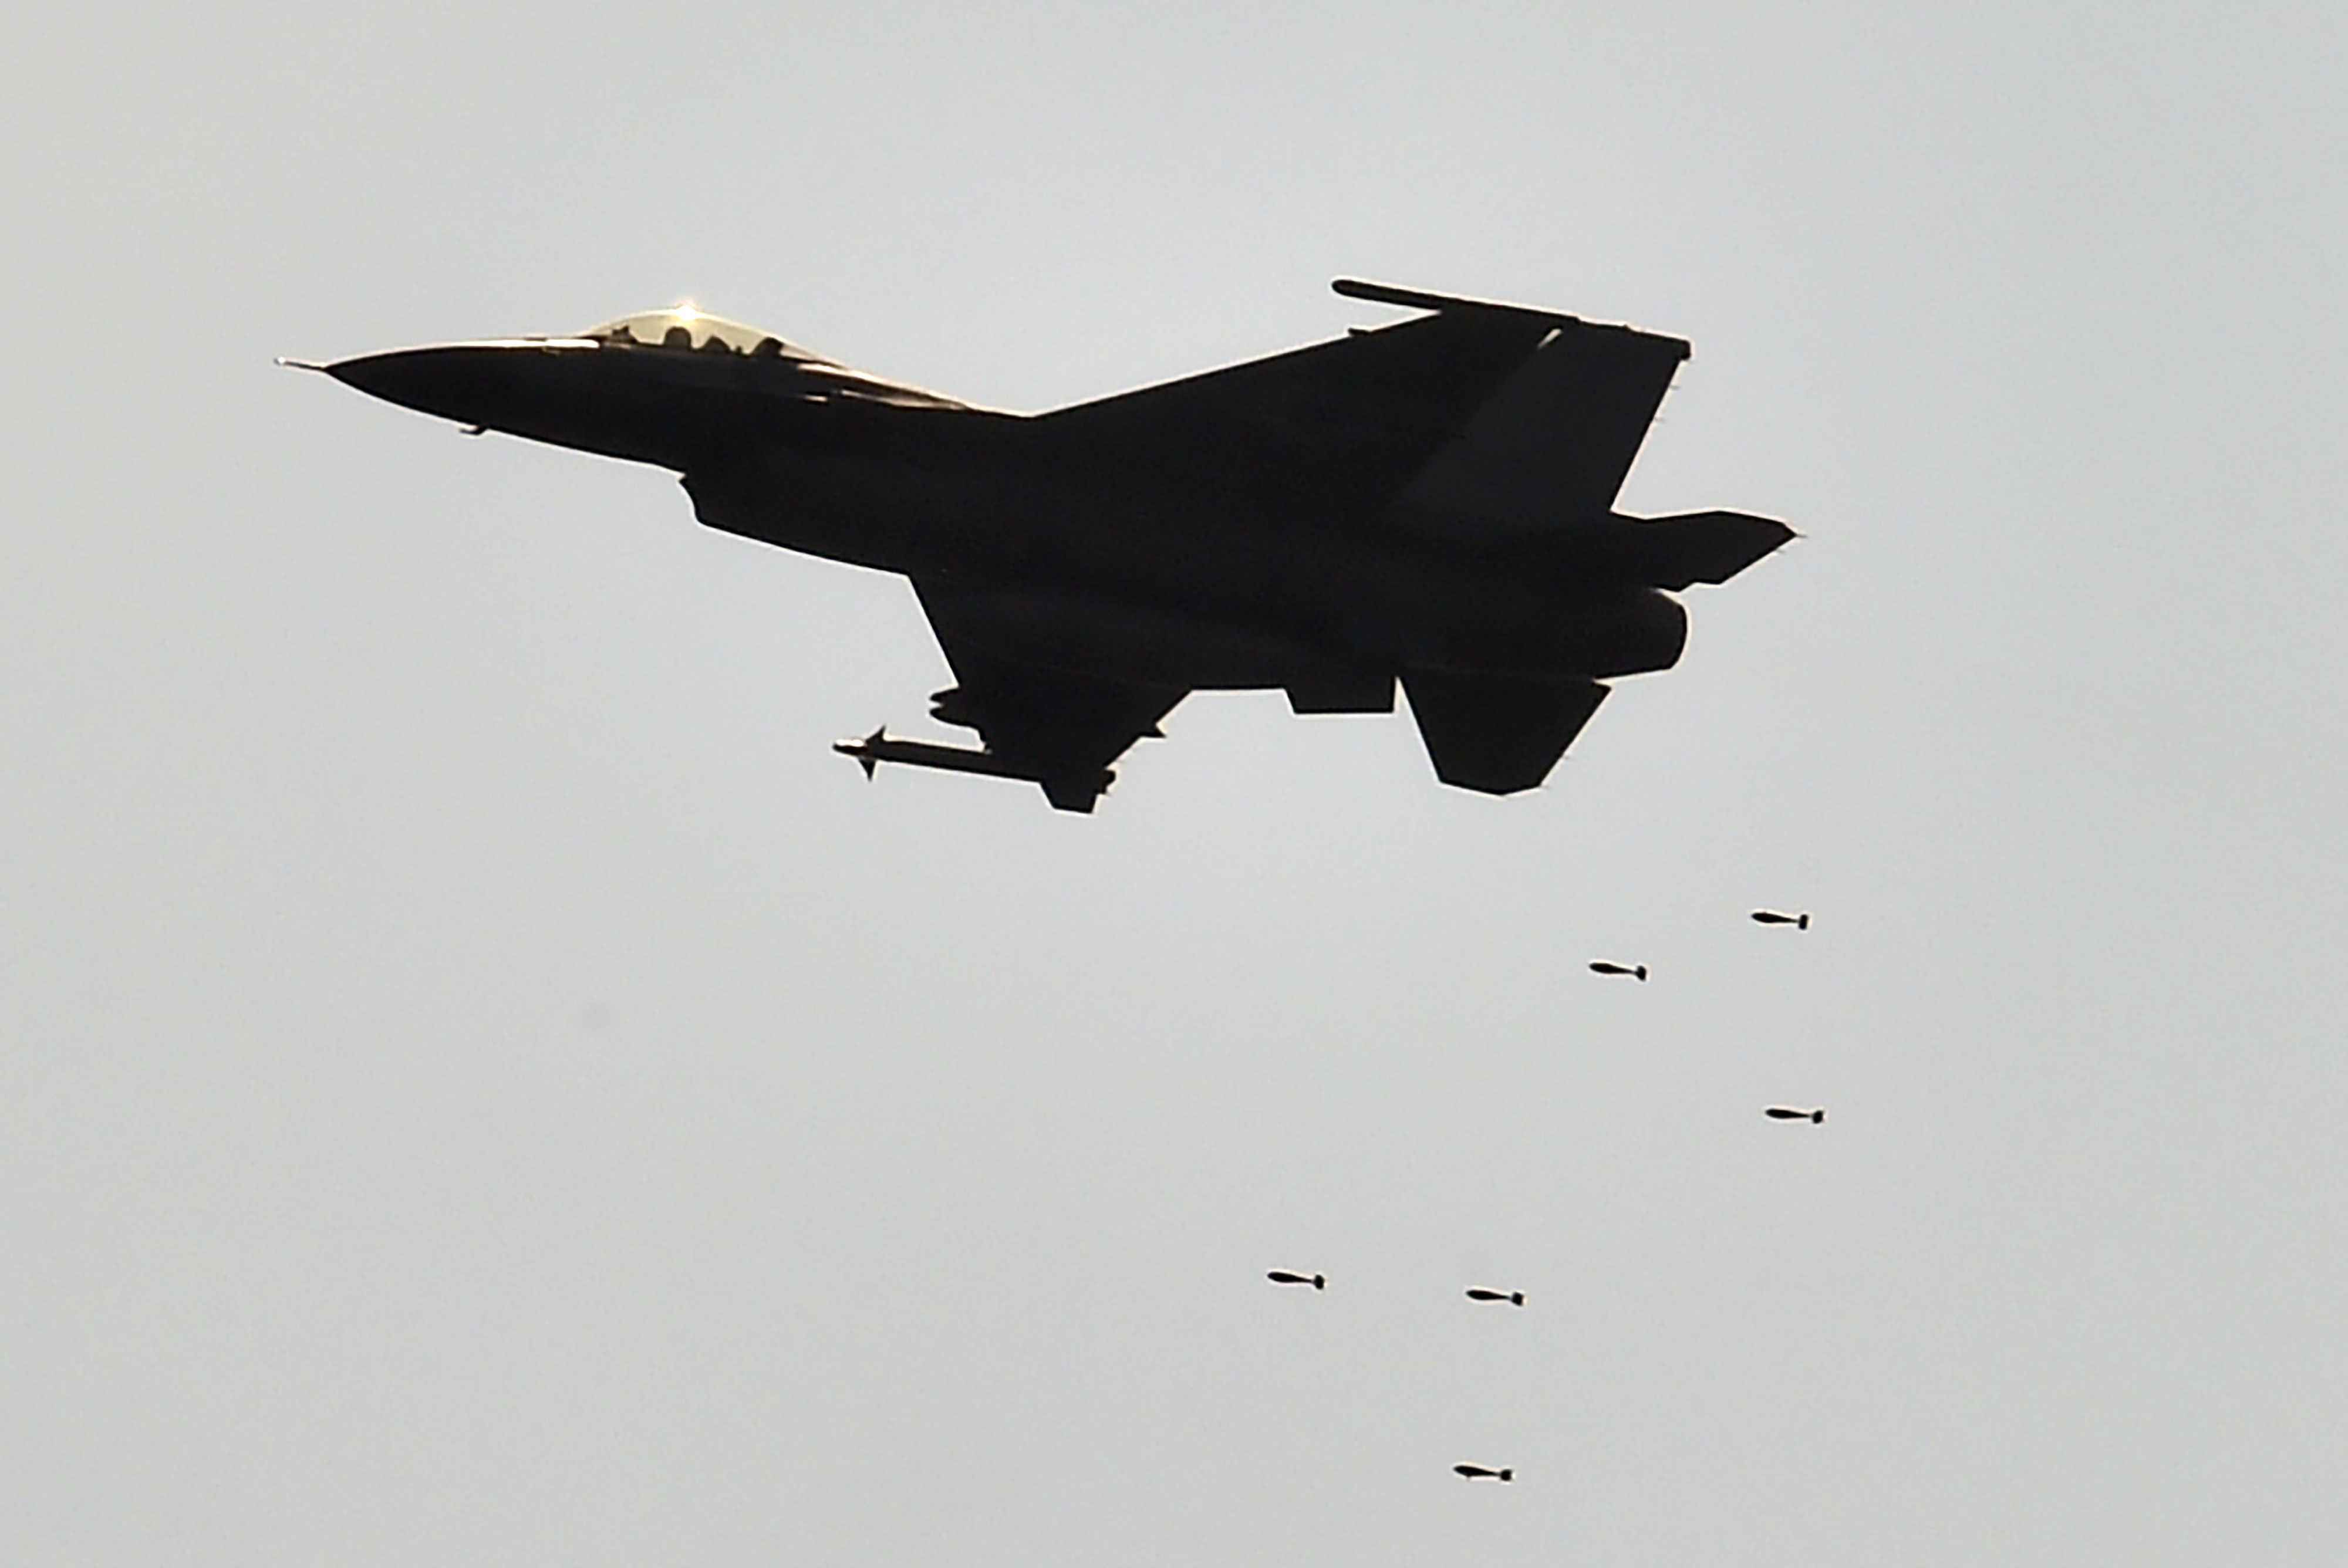 A U.S.-made F-16 fighter drop bombs during the annual Han Guang life-fire drill in southern Pingtung, Taiwan, on Aug. 25, 2016. The U.S. sold $1.8 billion of weapons to Taiwan in 2015